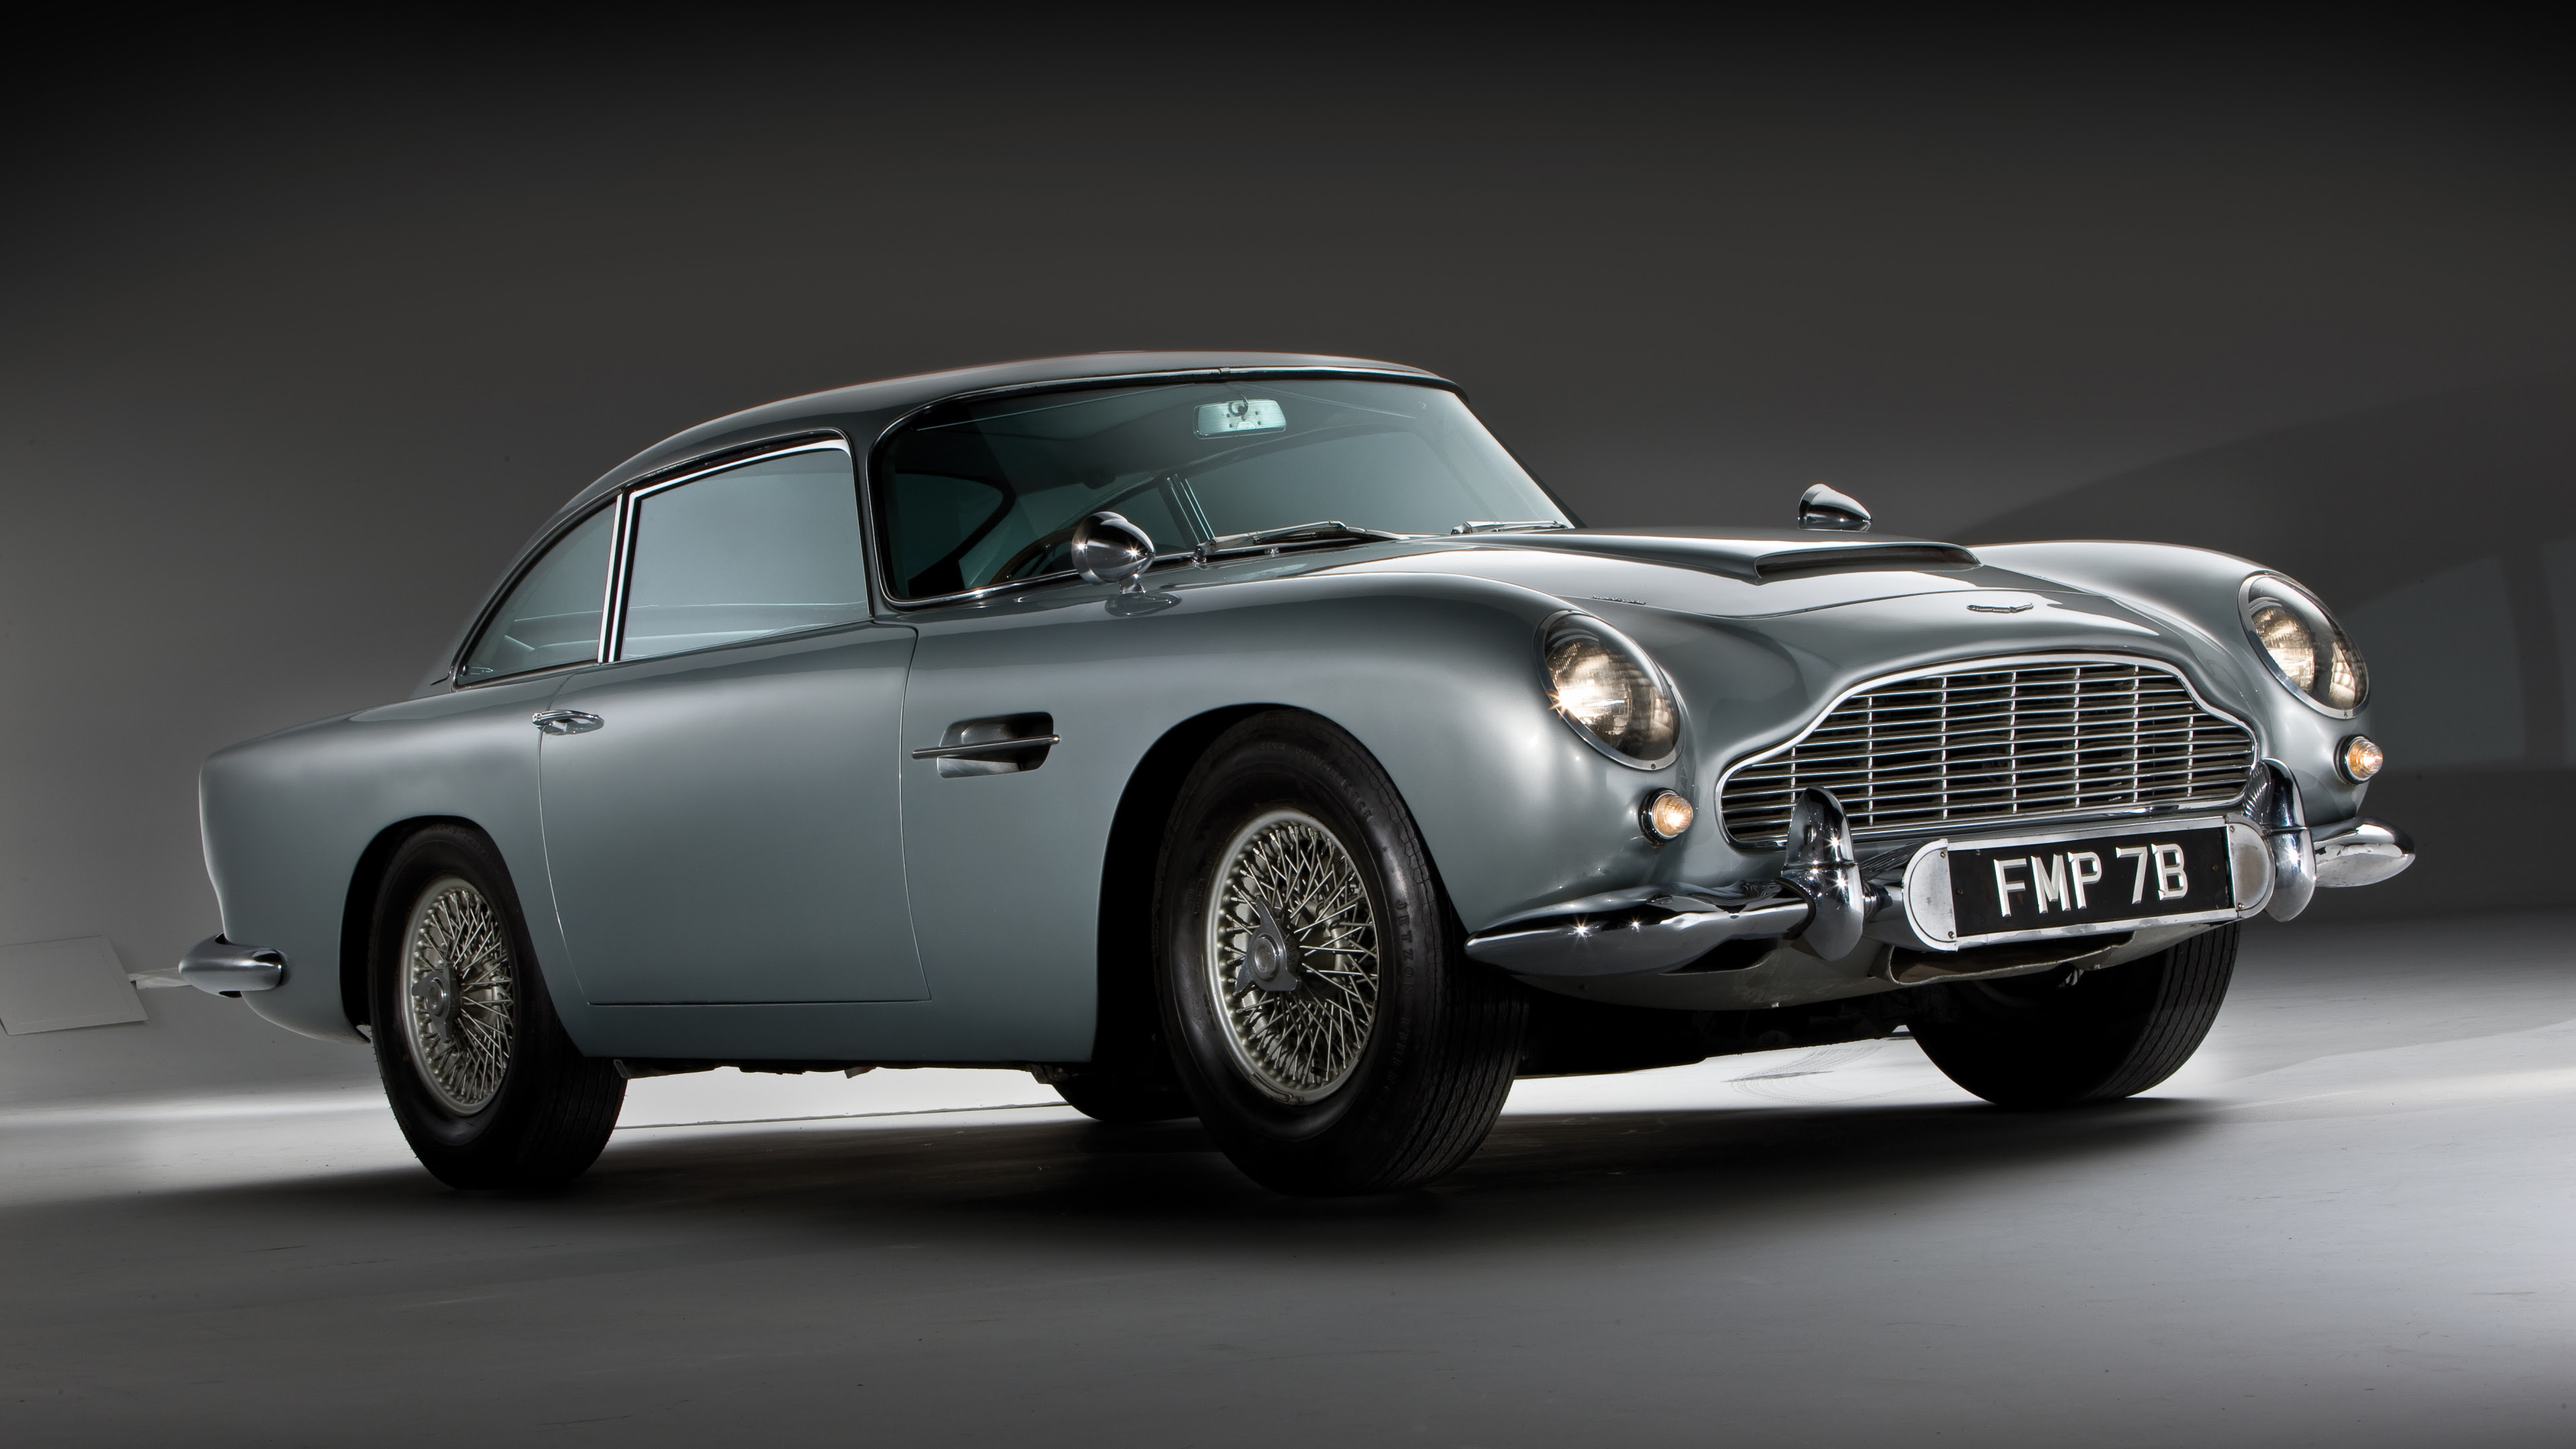 Aston Martin Db5 Wallpaper 74 Images Images, Photos, Reviews